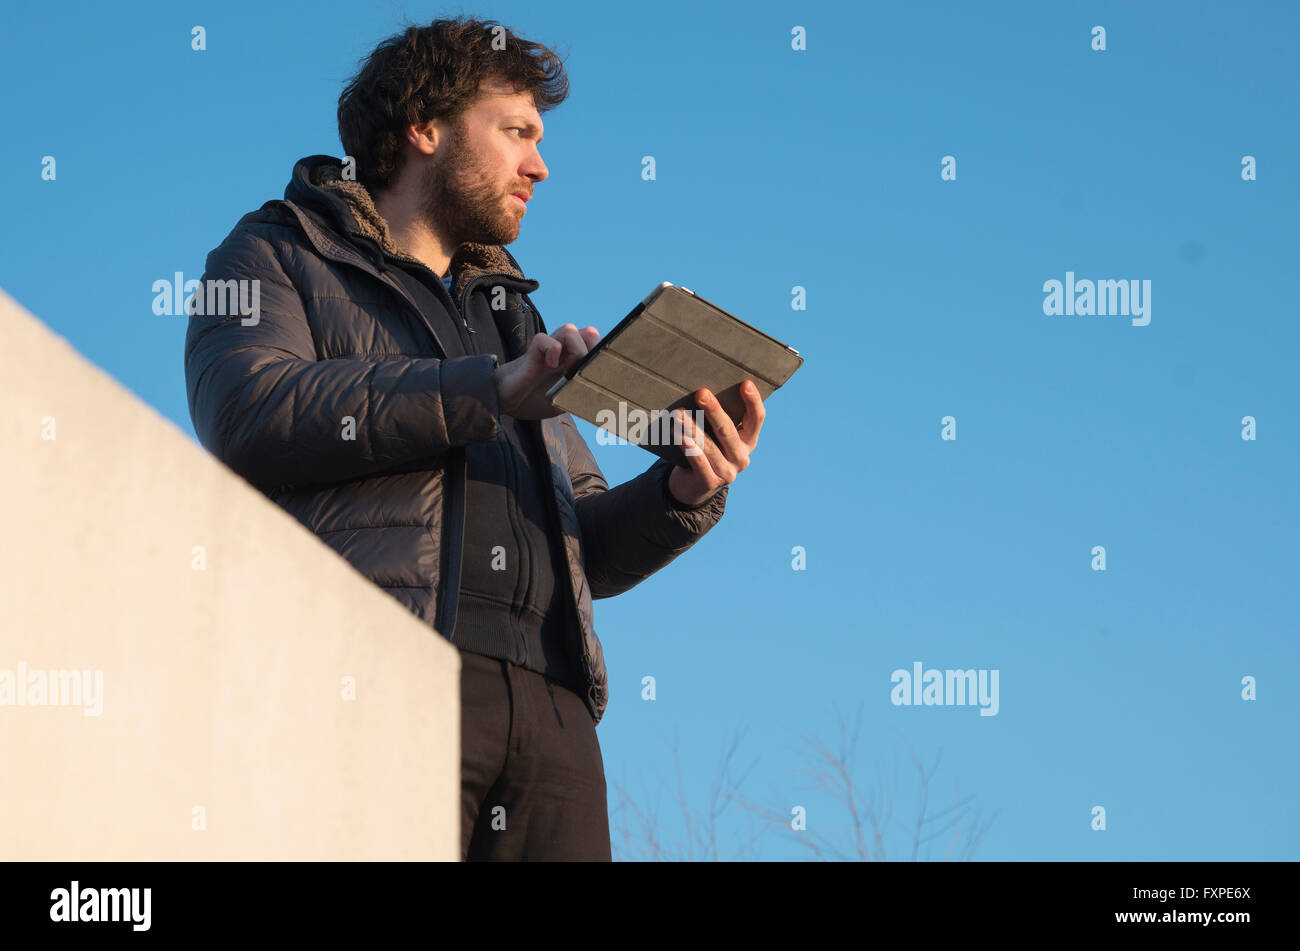 Man holding digital tablet outdoors, looking away in thought - Stock Image